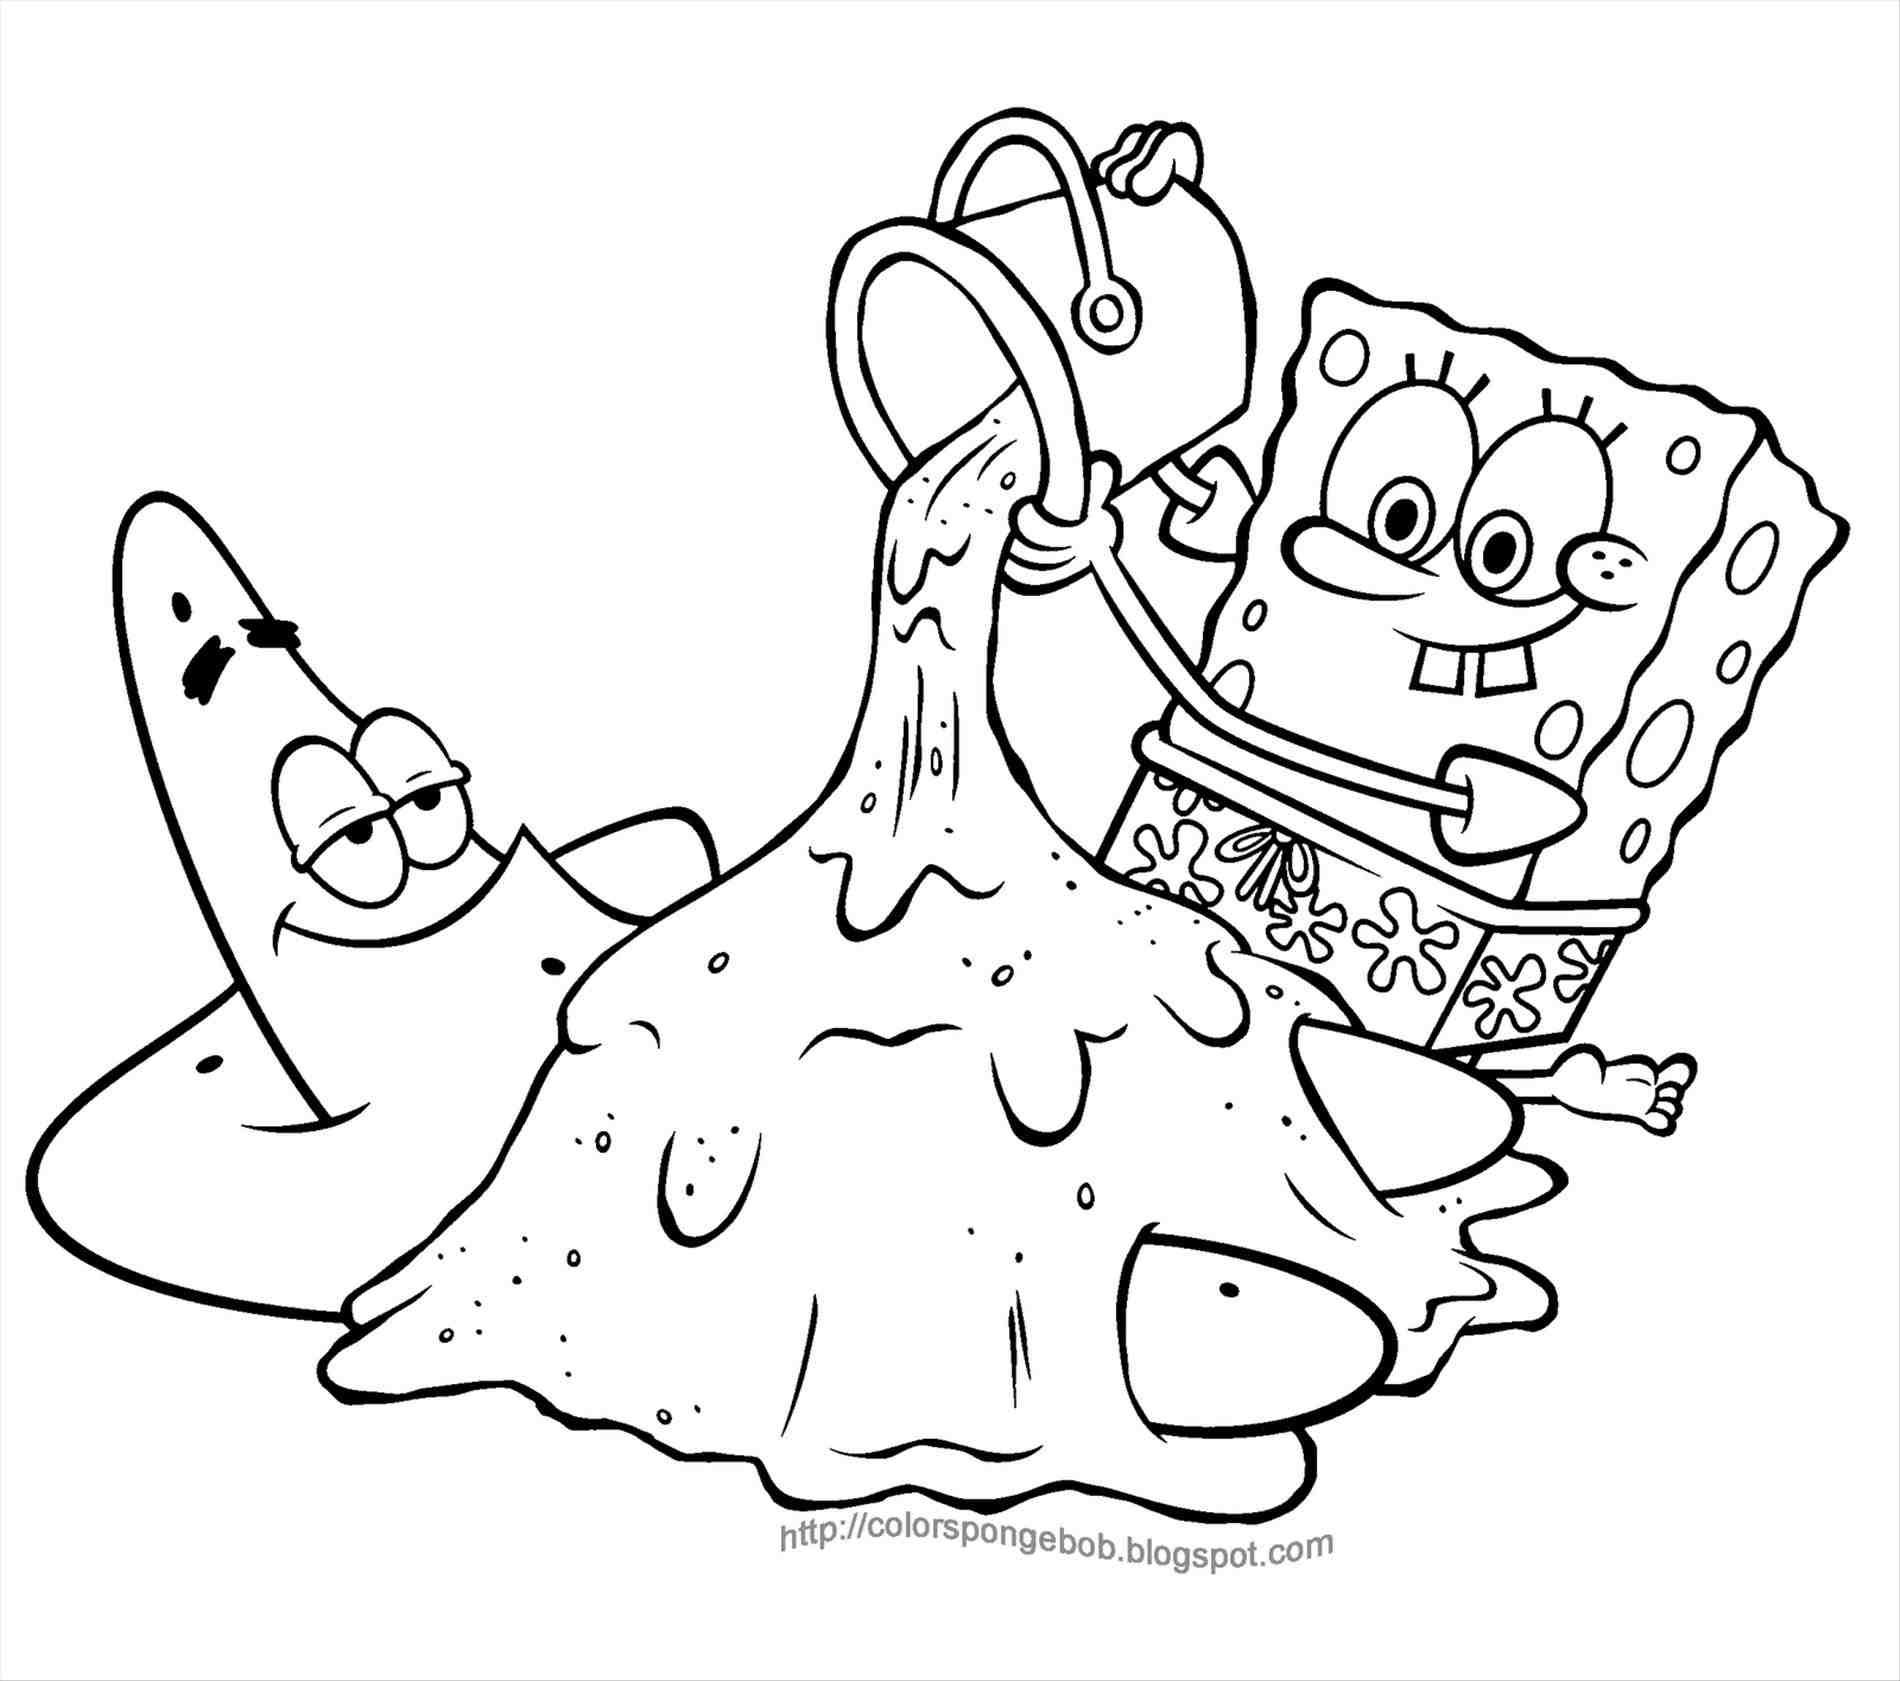 Spongebob Printable Coloring Pages Free Online Sheets For Kids Get The Latest Images